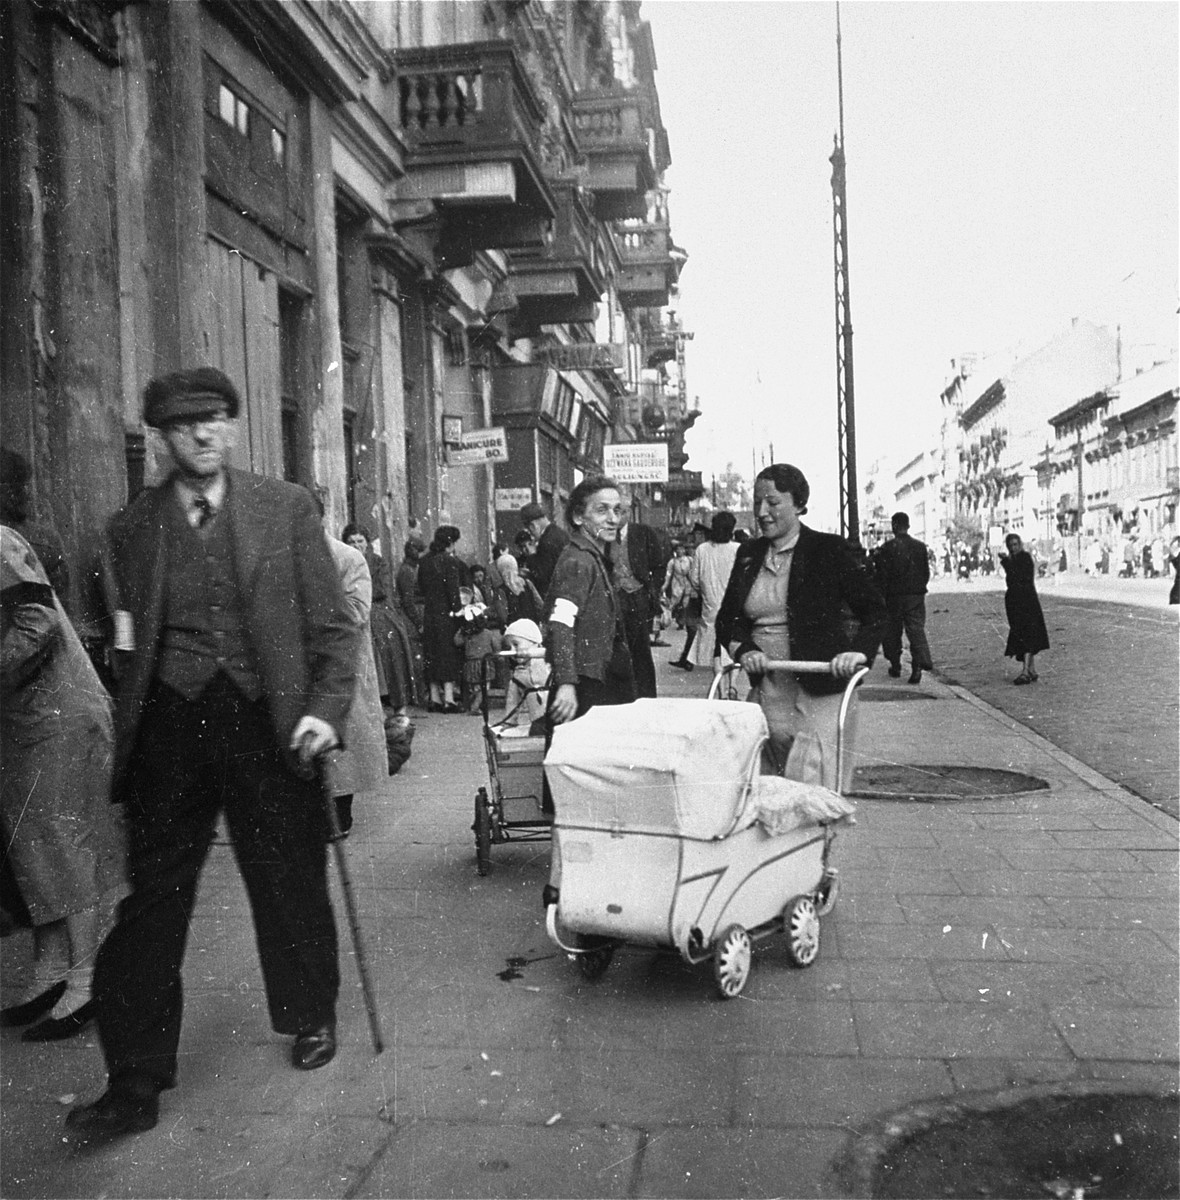 """Two Jewish mothers on Leszno Street in the Warsaw ghetto.    Joest's caption reads: """"It looked like a normal street scene.  Furniture stores, a manicure shop, two women with baby carriages . . . If only the armbands were not visible.  I believe this was the Gerichtsstrasse, which was earlier called Leszno Street."""""""